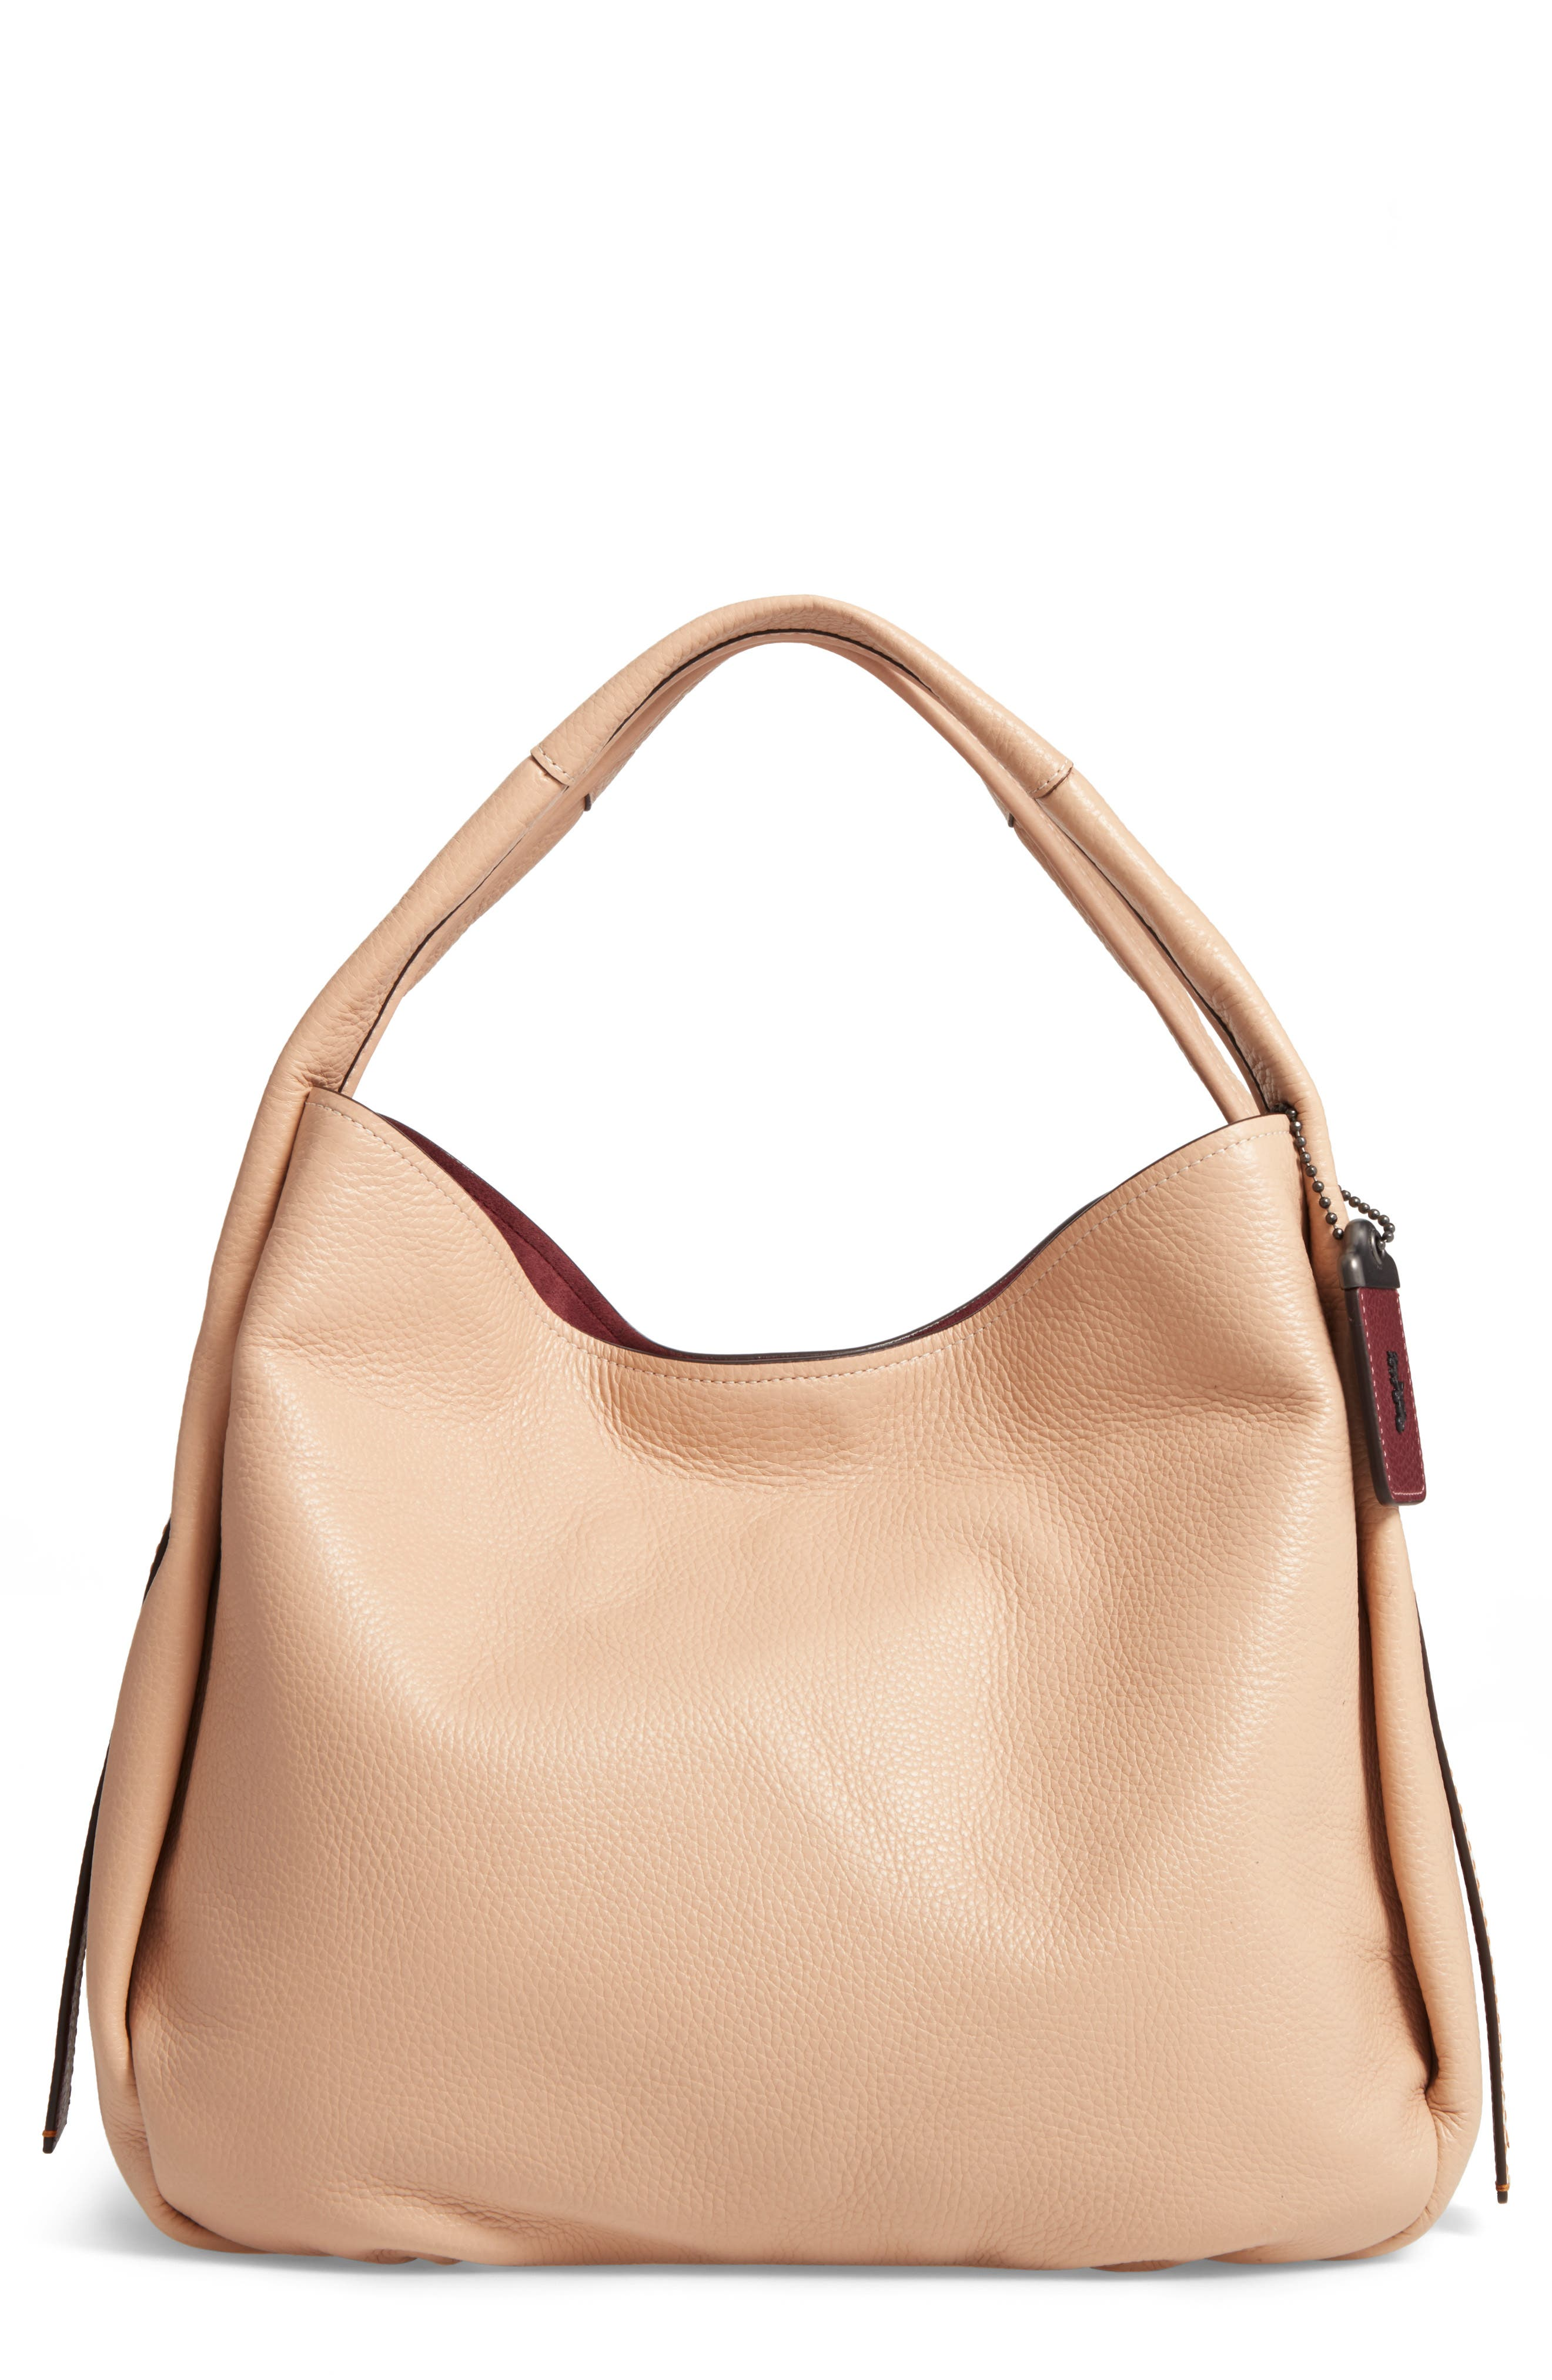 COACH 1941 Bandit Leather Hobo & Removable Shoulder Bag | Nordstrom